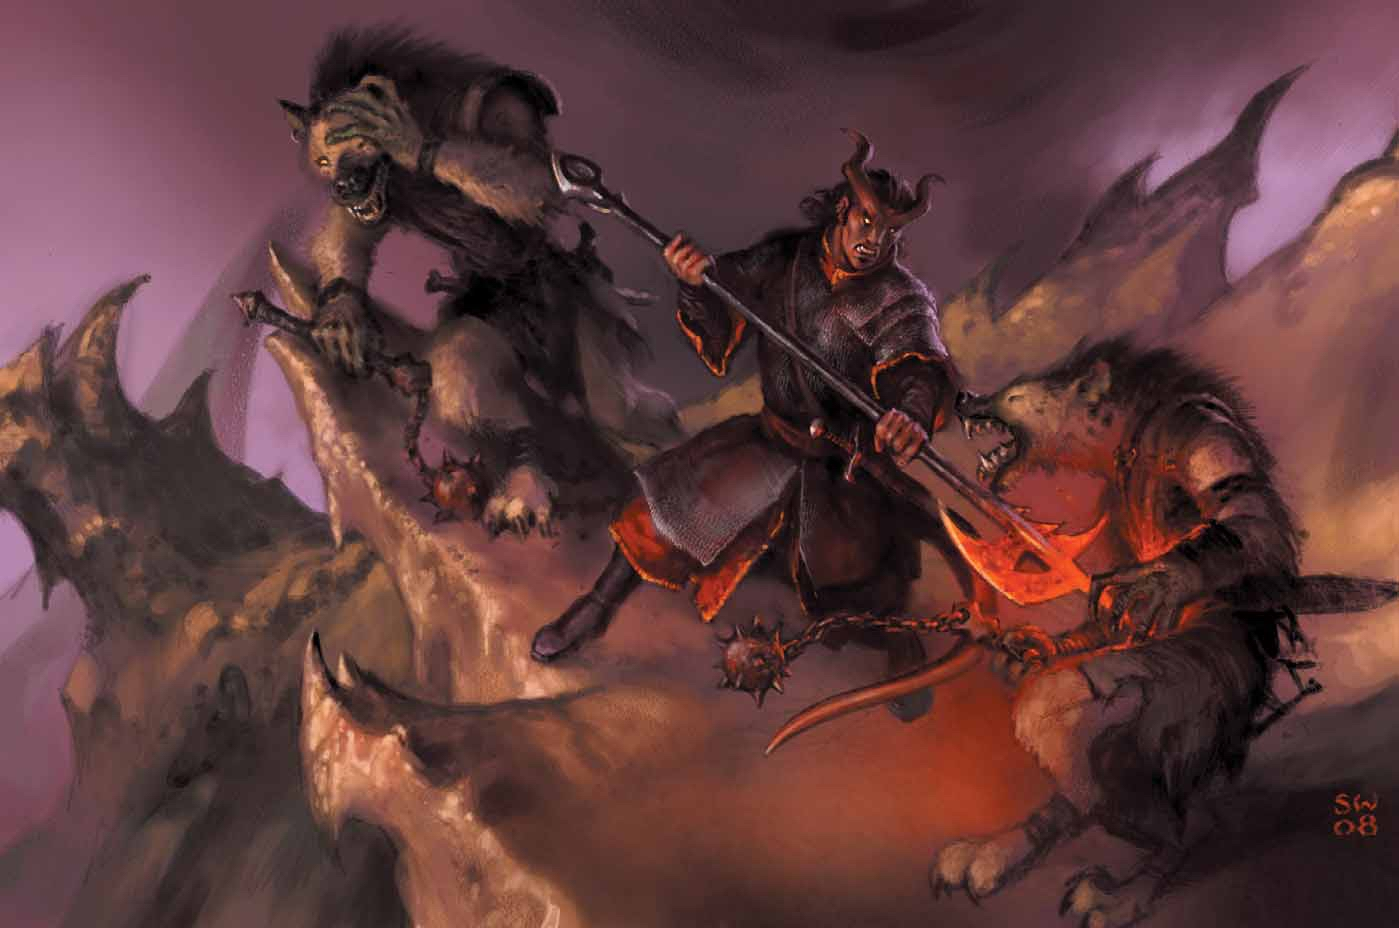 {$tags} Tiefling e gnoll - by Sam Wood Dragon Magazine #369 (2008-11) © Wizards of the Coast & Hasbro